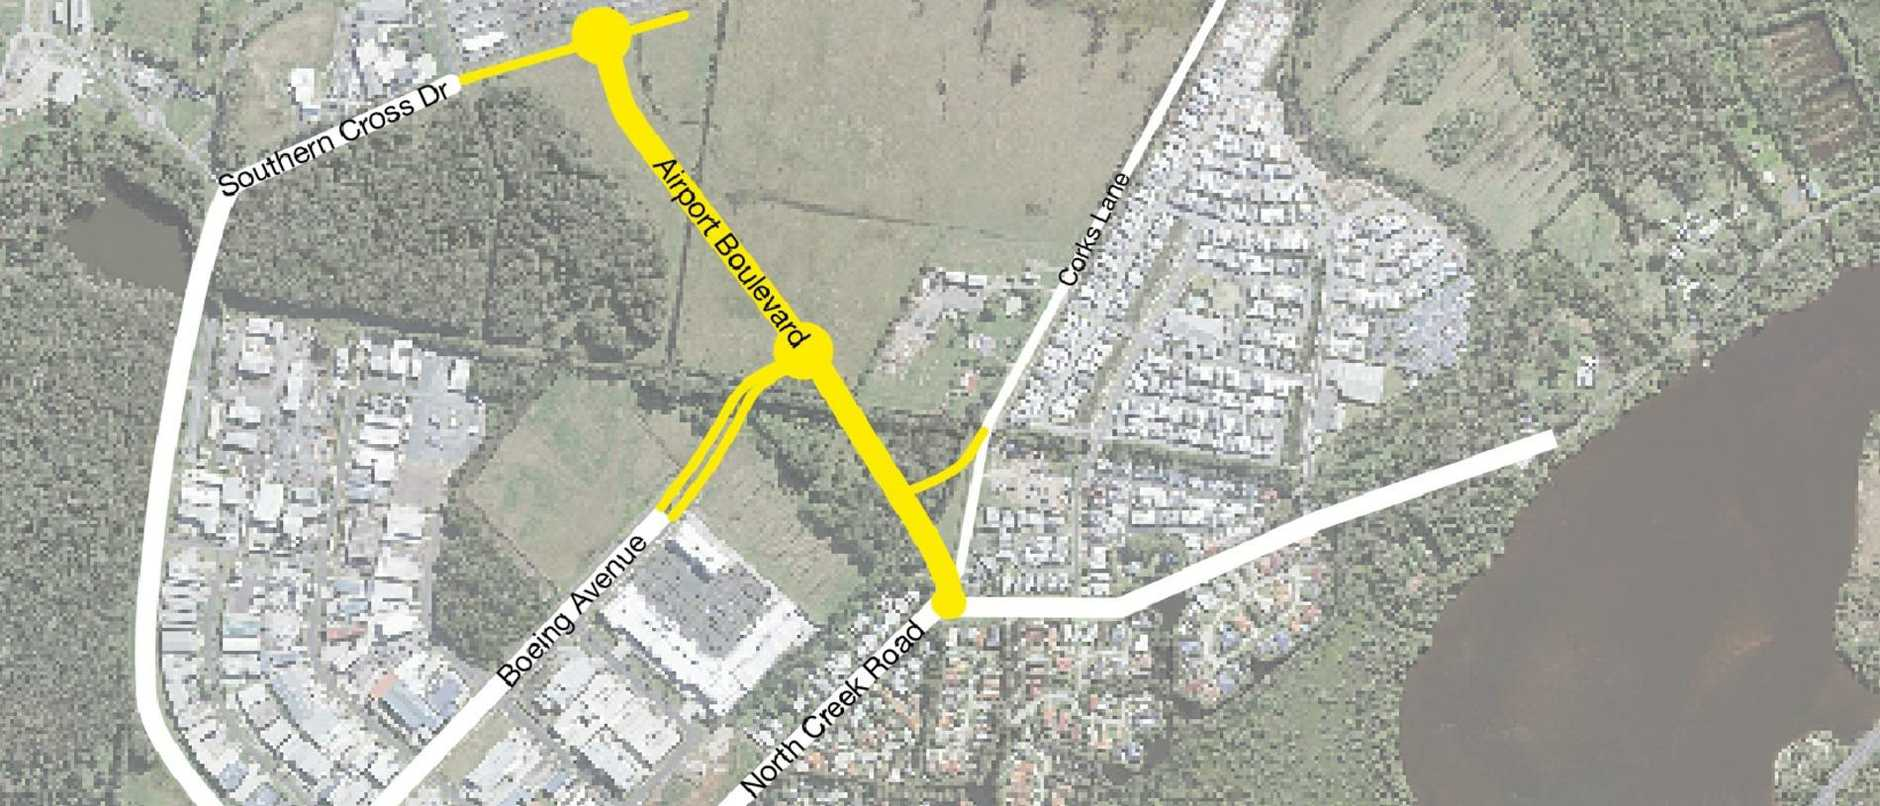 Construction is about to start on Airport Boulevard, the new entrance road to the Ballina Byron Gateway Airport.